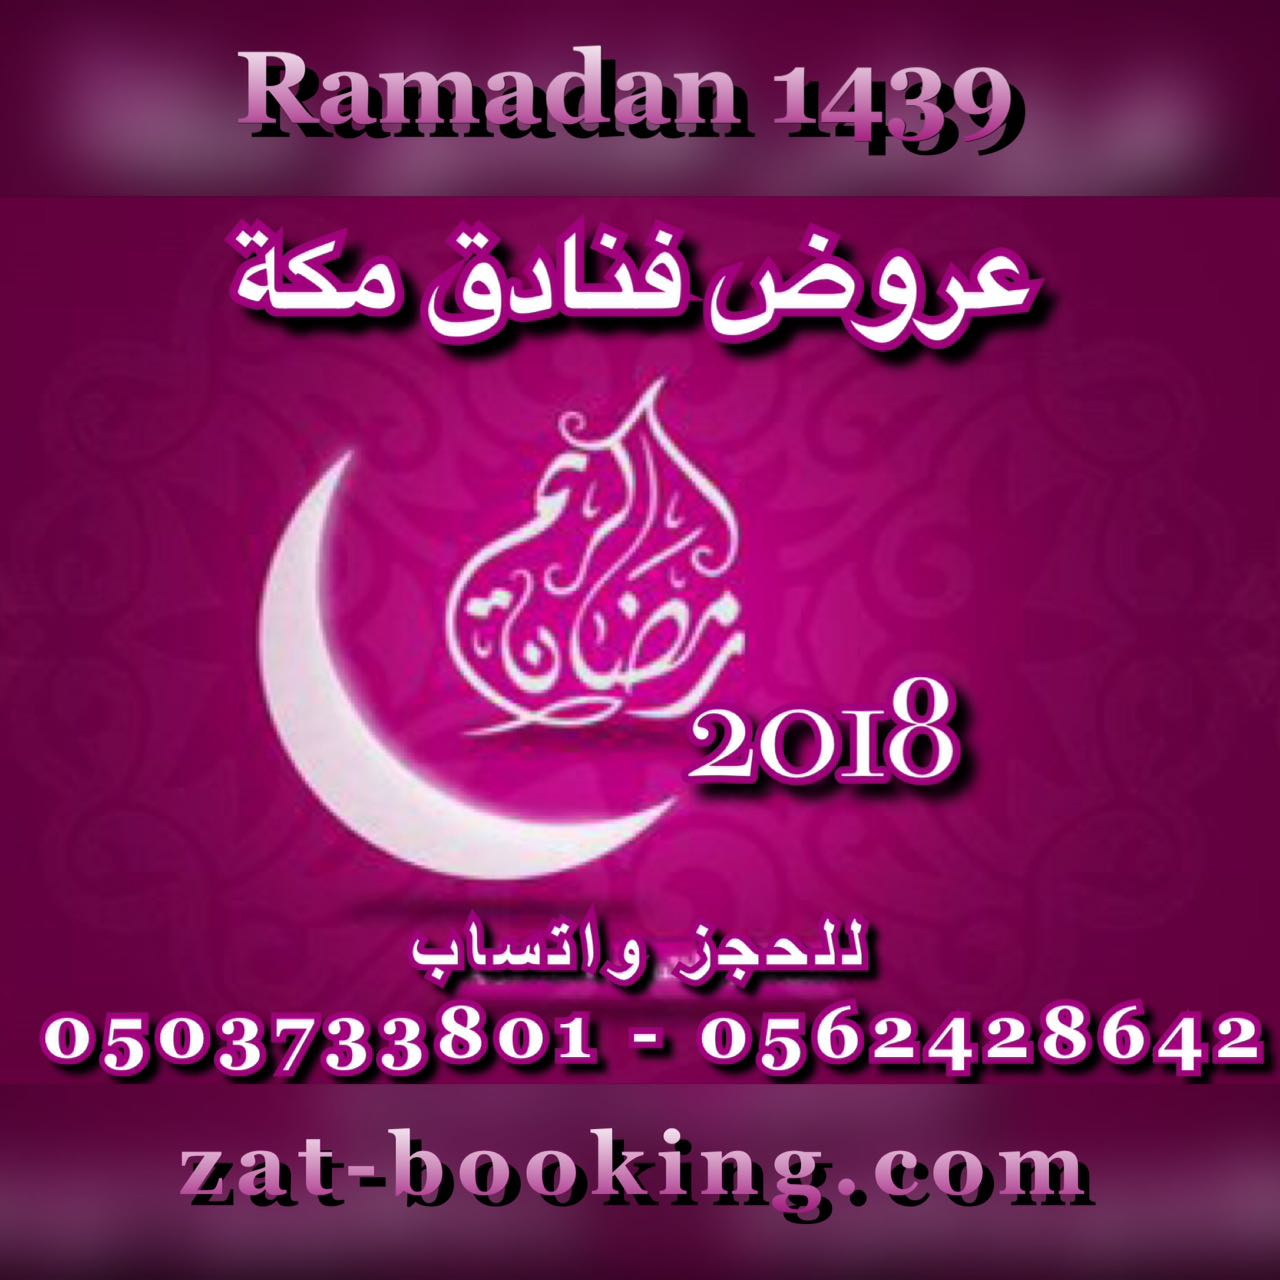 Makkah Hotels Rates Ramadan Offers 1439